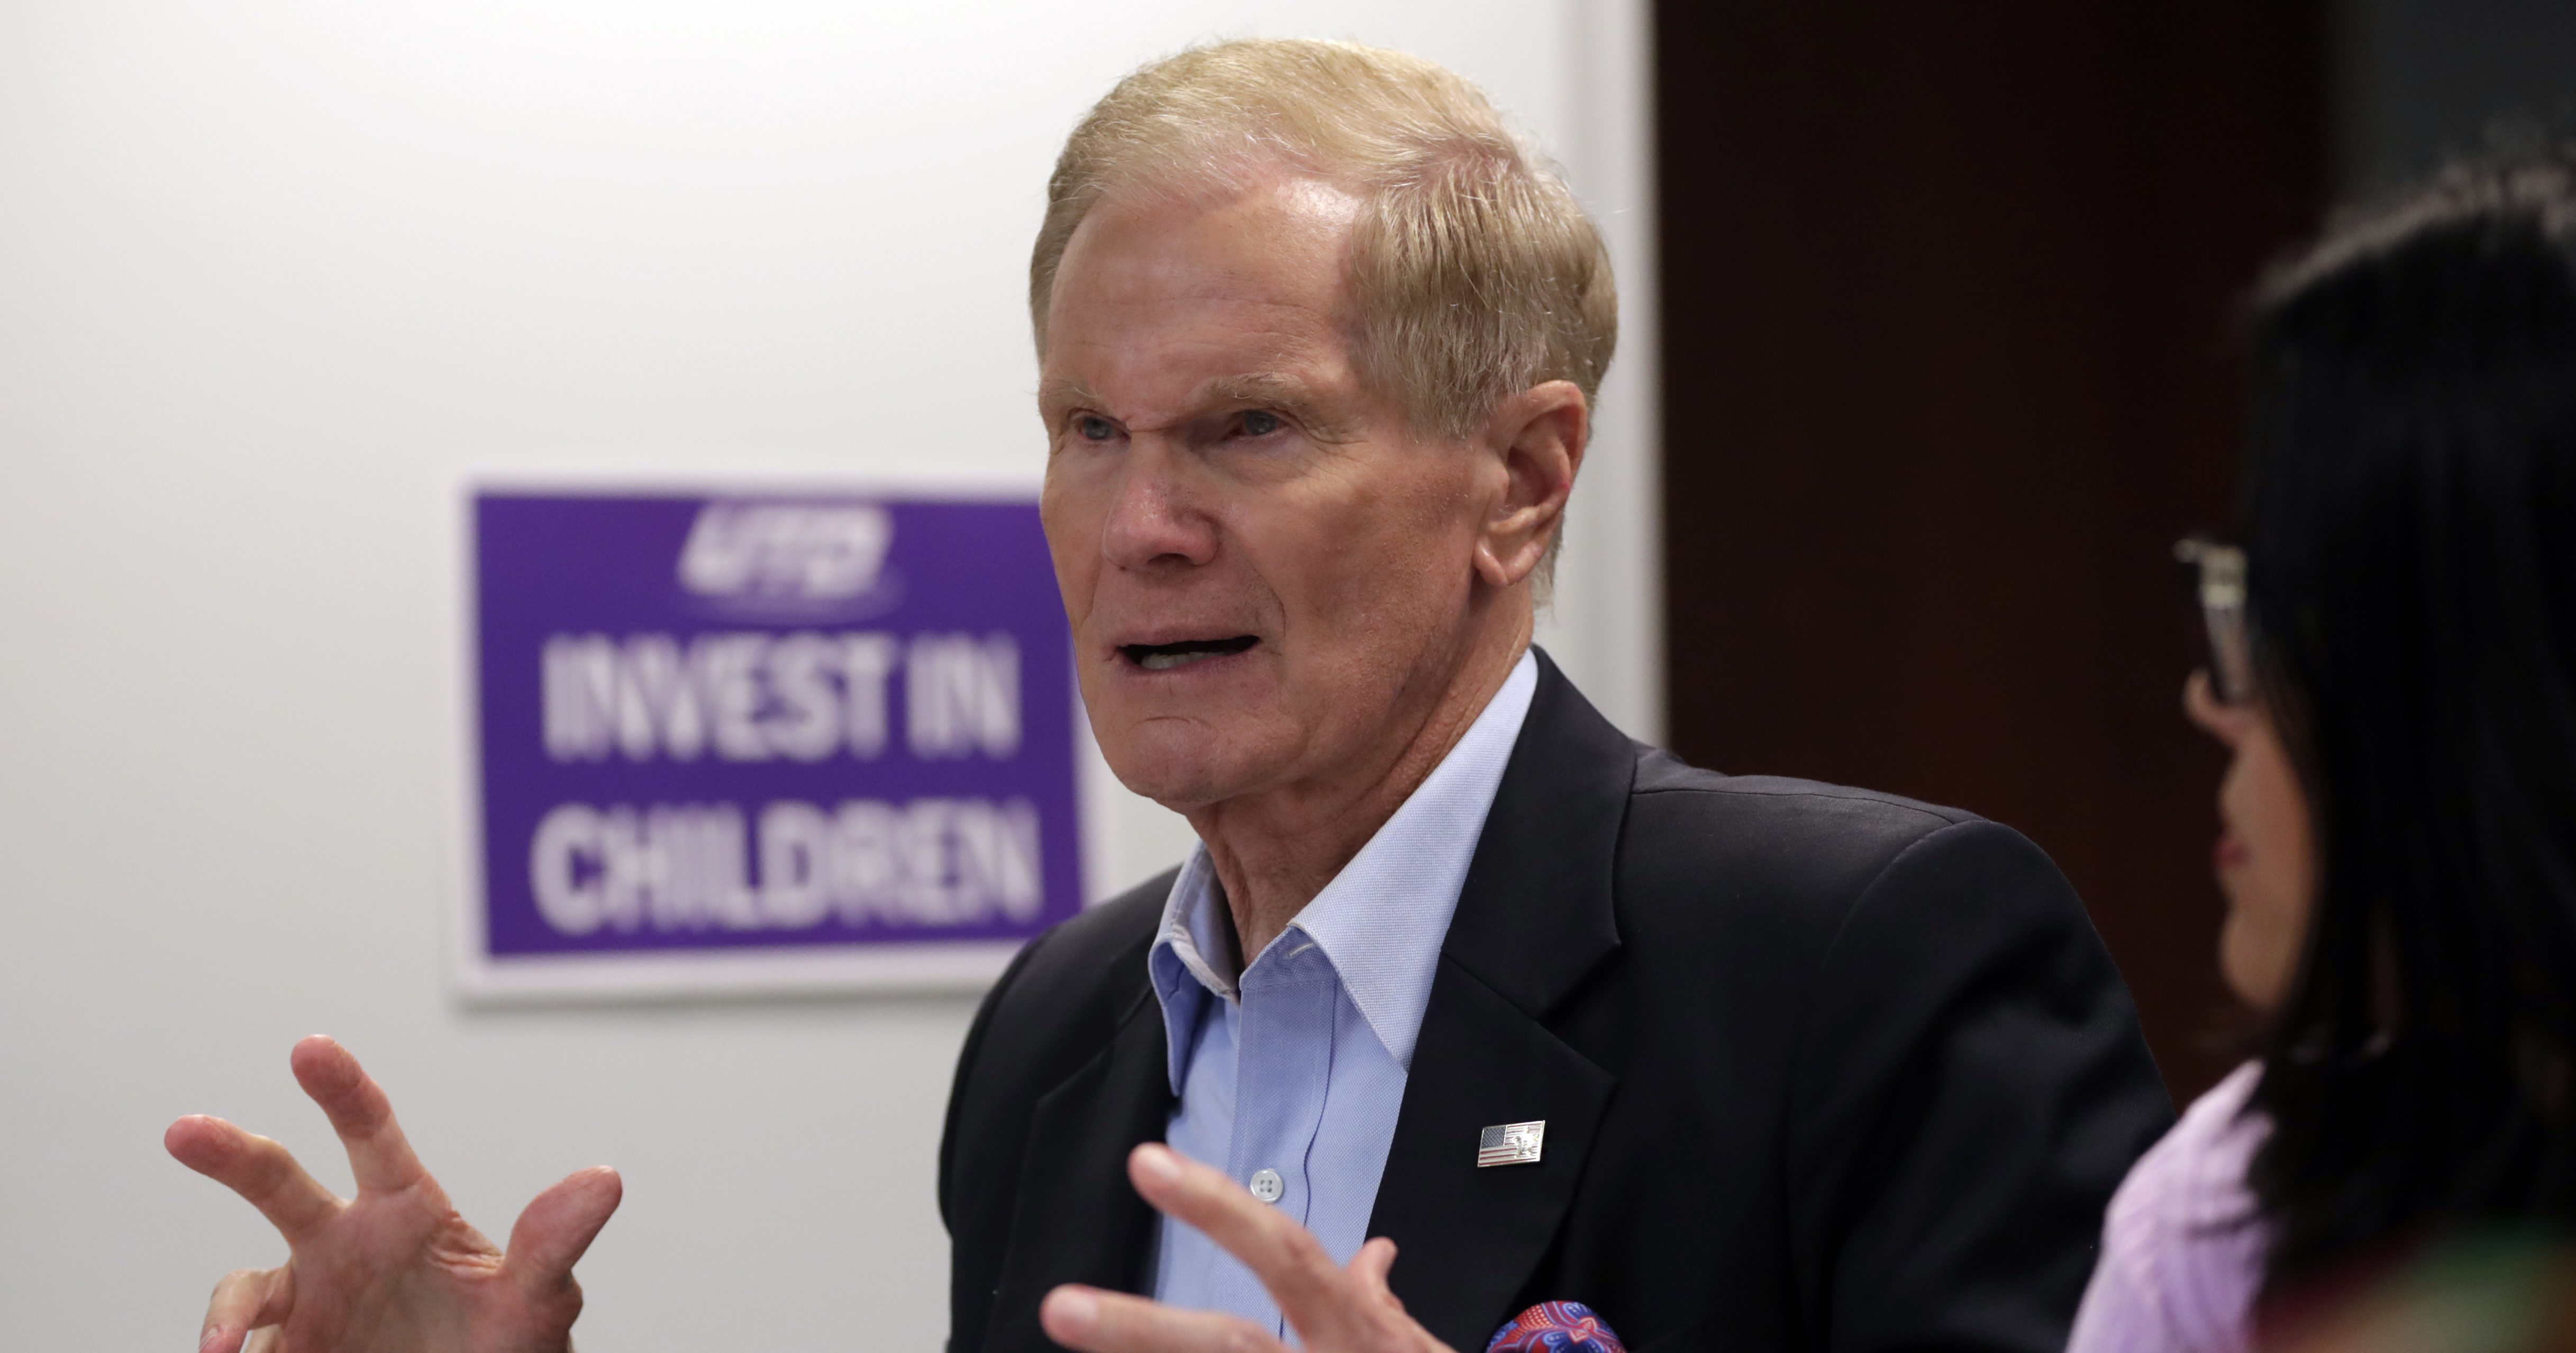 n this Aug. 6, 2018, photo, Sen. Bill Nelson, D-Fla., speaks during a roundtable discussion with education leaders from South Florida at the United Teachers of Dade headquarters in Miami. Nelson says Russian operatives have penetrated some of his state's election systems ahead of this year's midterms. But Florida state officials said Wednesday, Aug. 8, that they have no information to support the claim